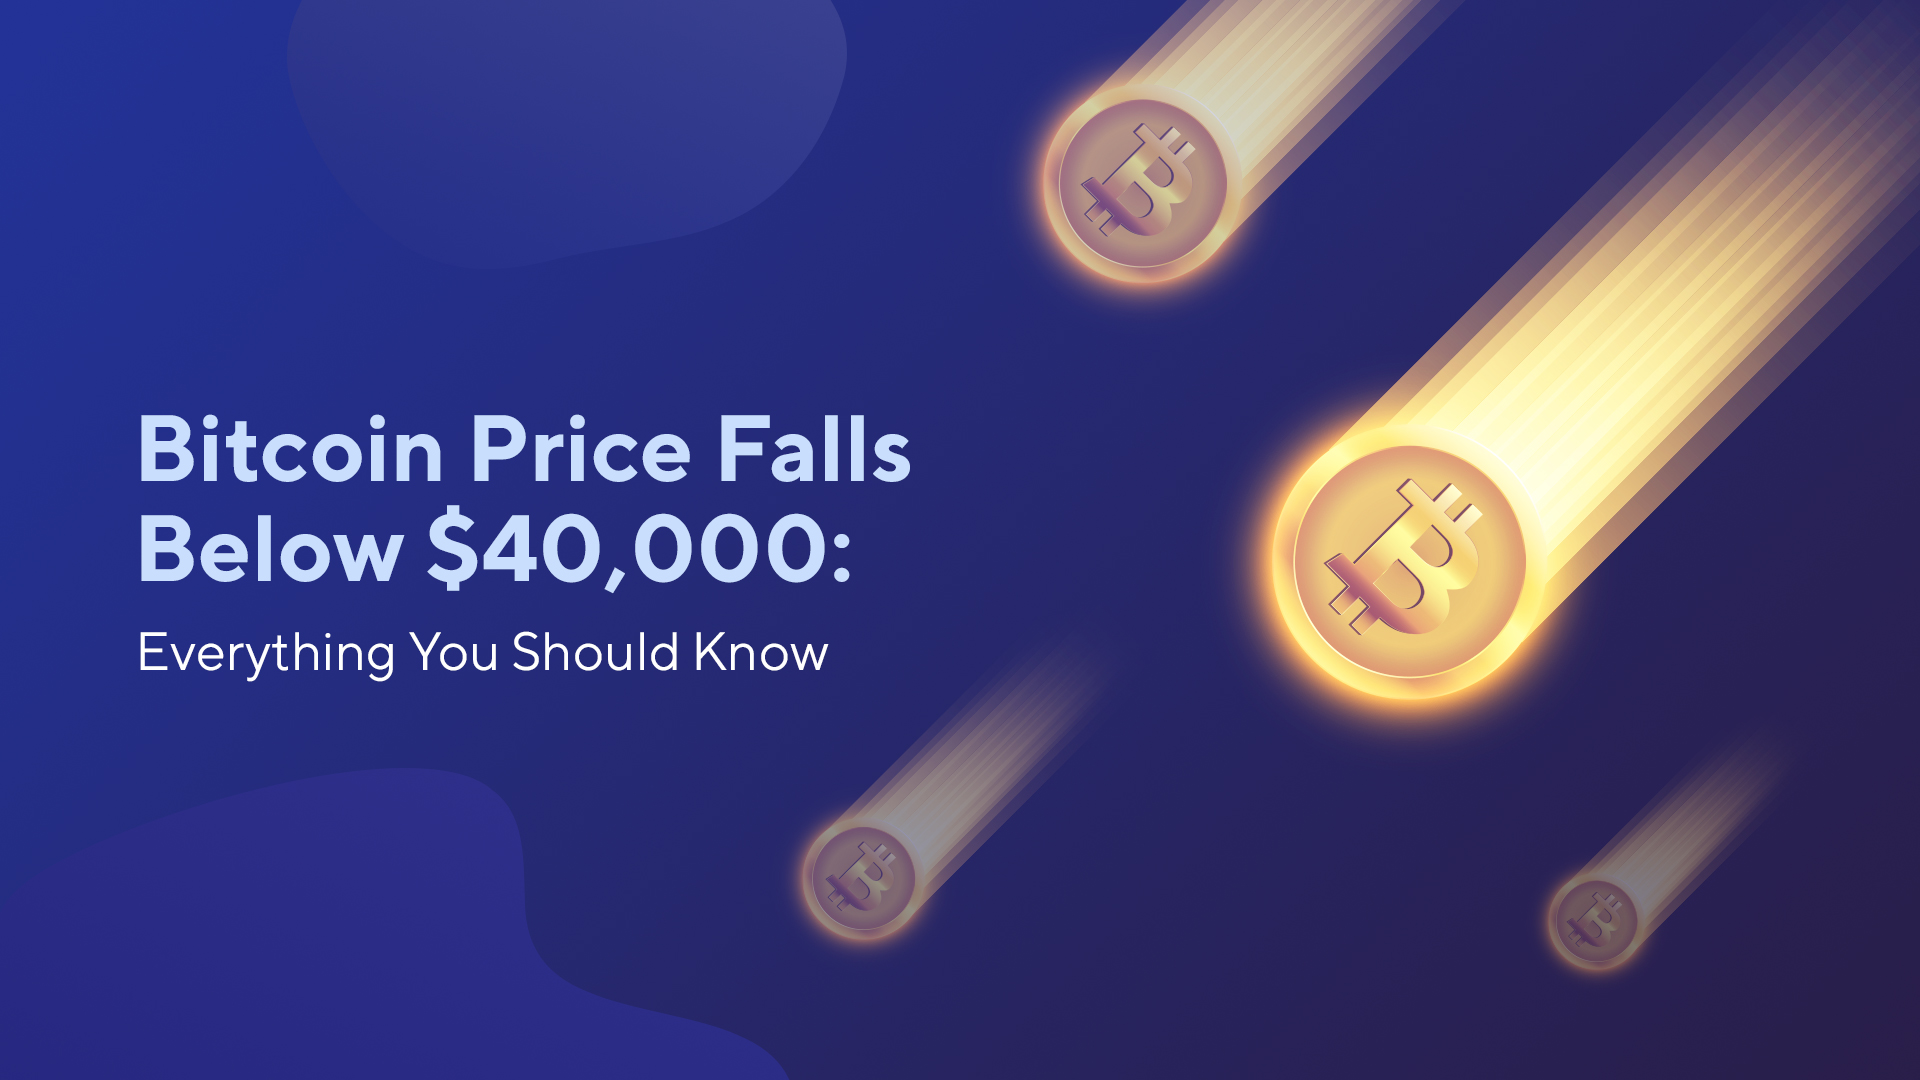 Bitcoin Price Falls Below $40,000: Everything You Should Know